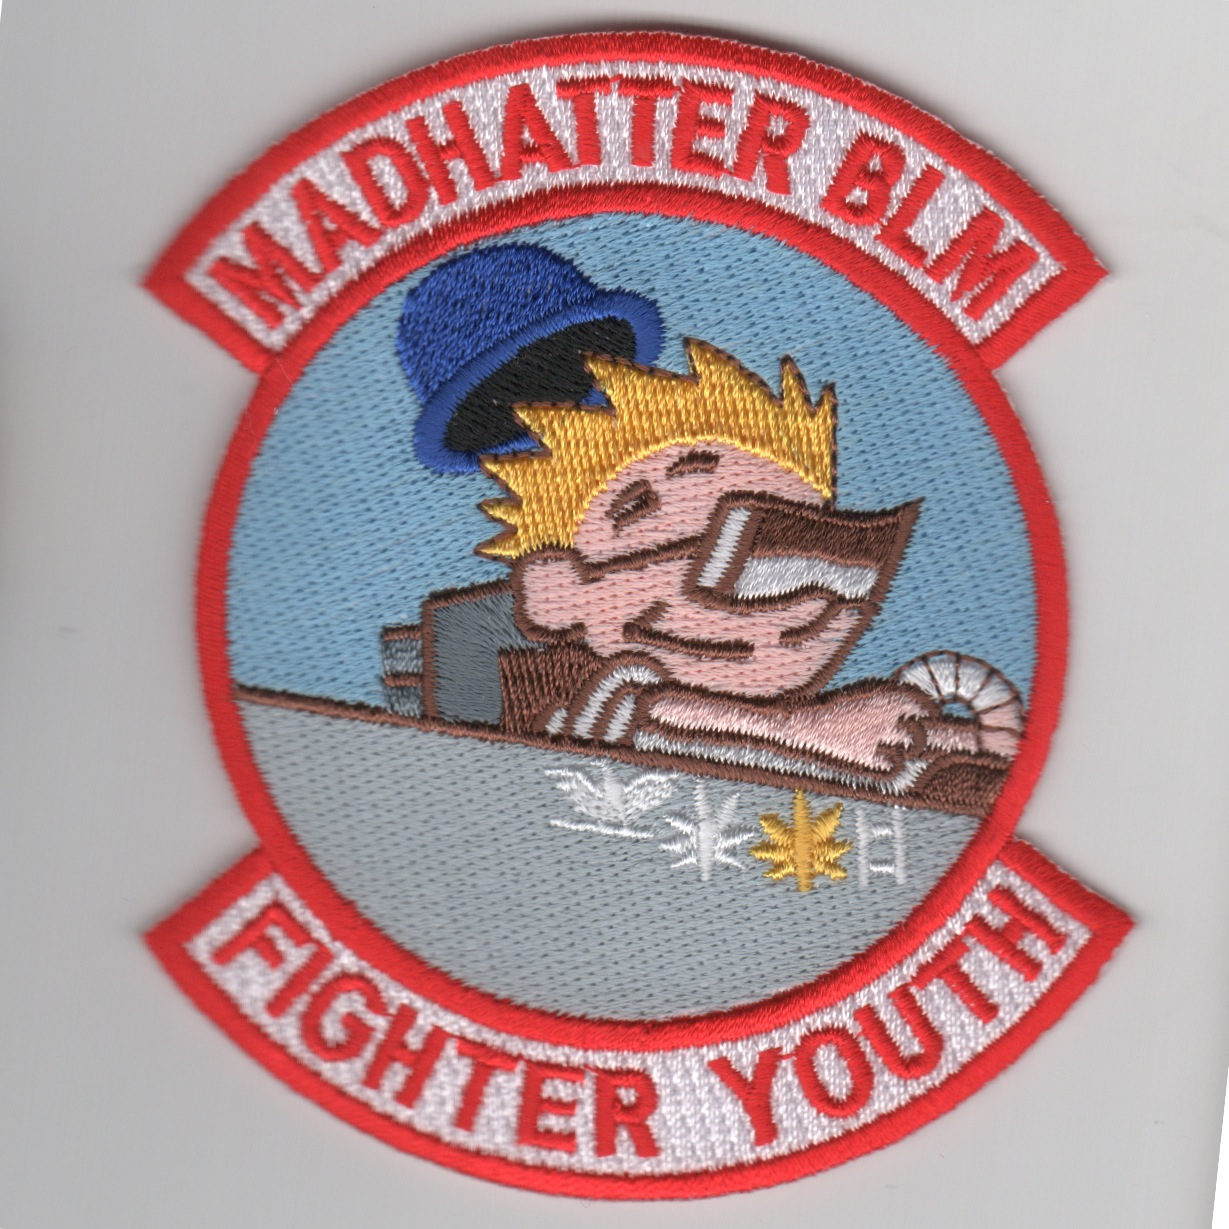 492FS 'Madhatter BLM/Fighter Youth'